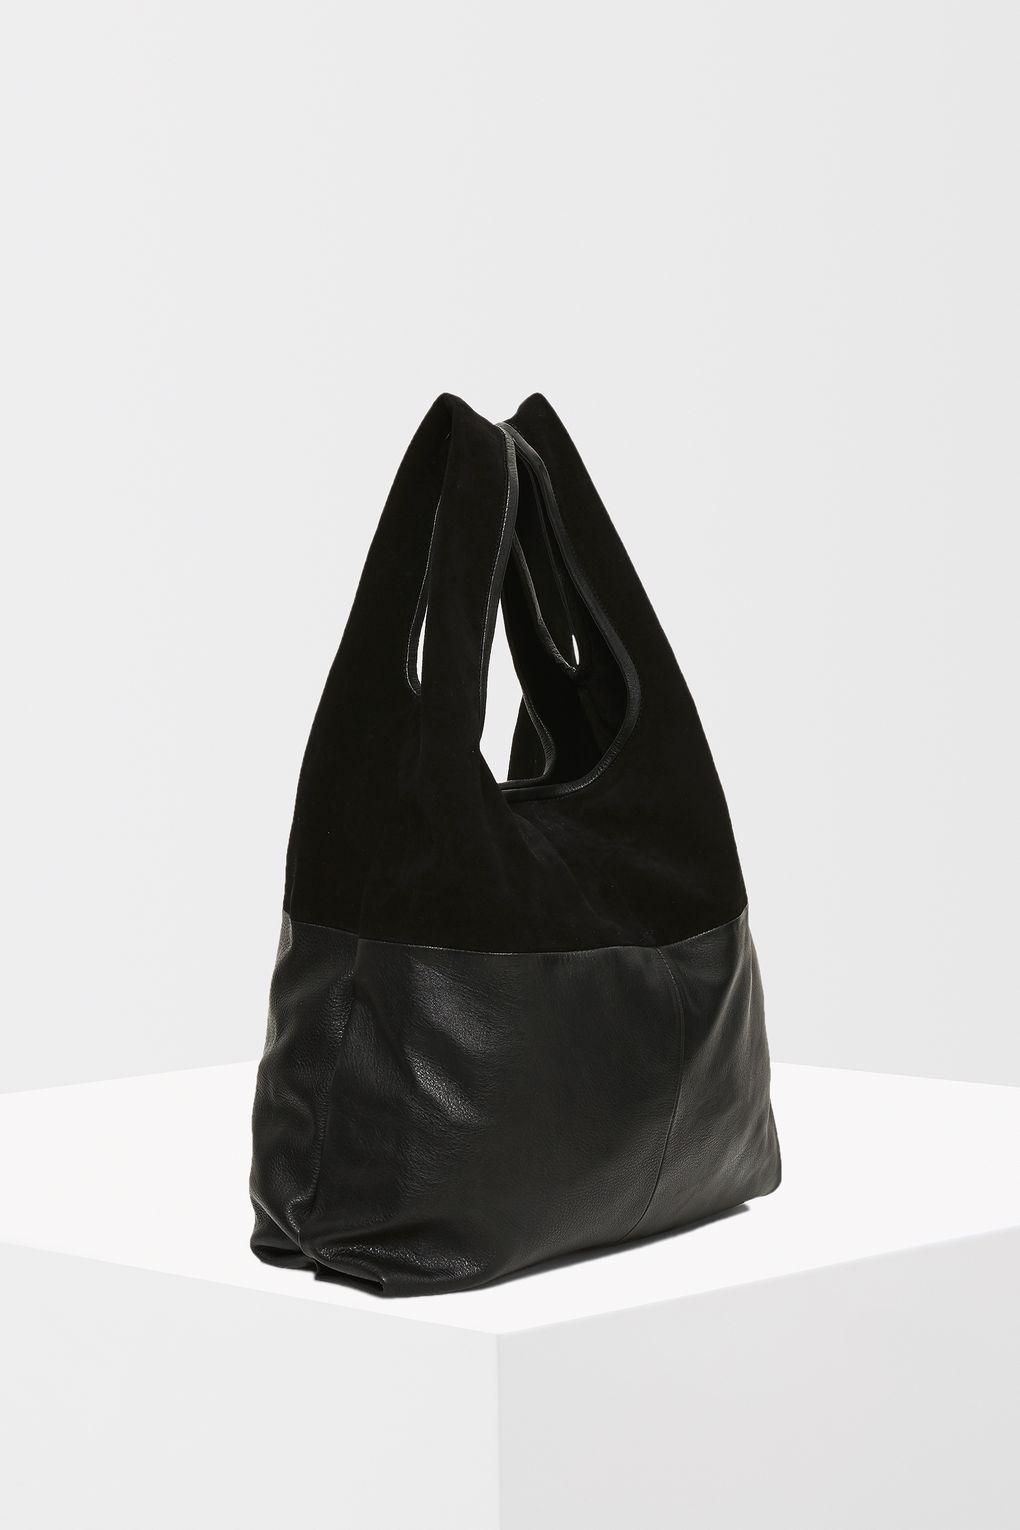 b2631e8d648 Lyst - TOPSHOP Premium Leather Slouch Grab Tote Bag in Black